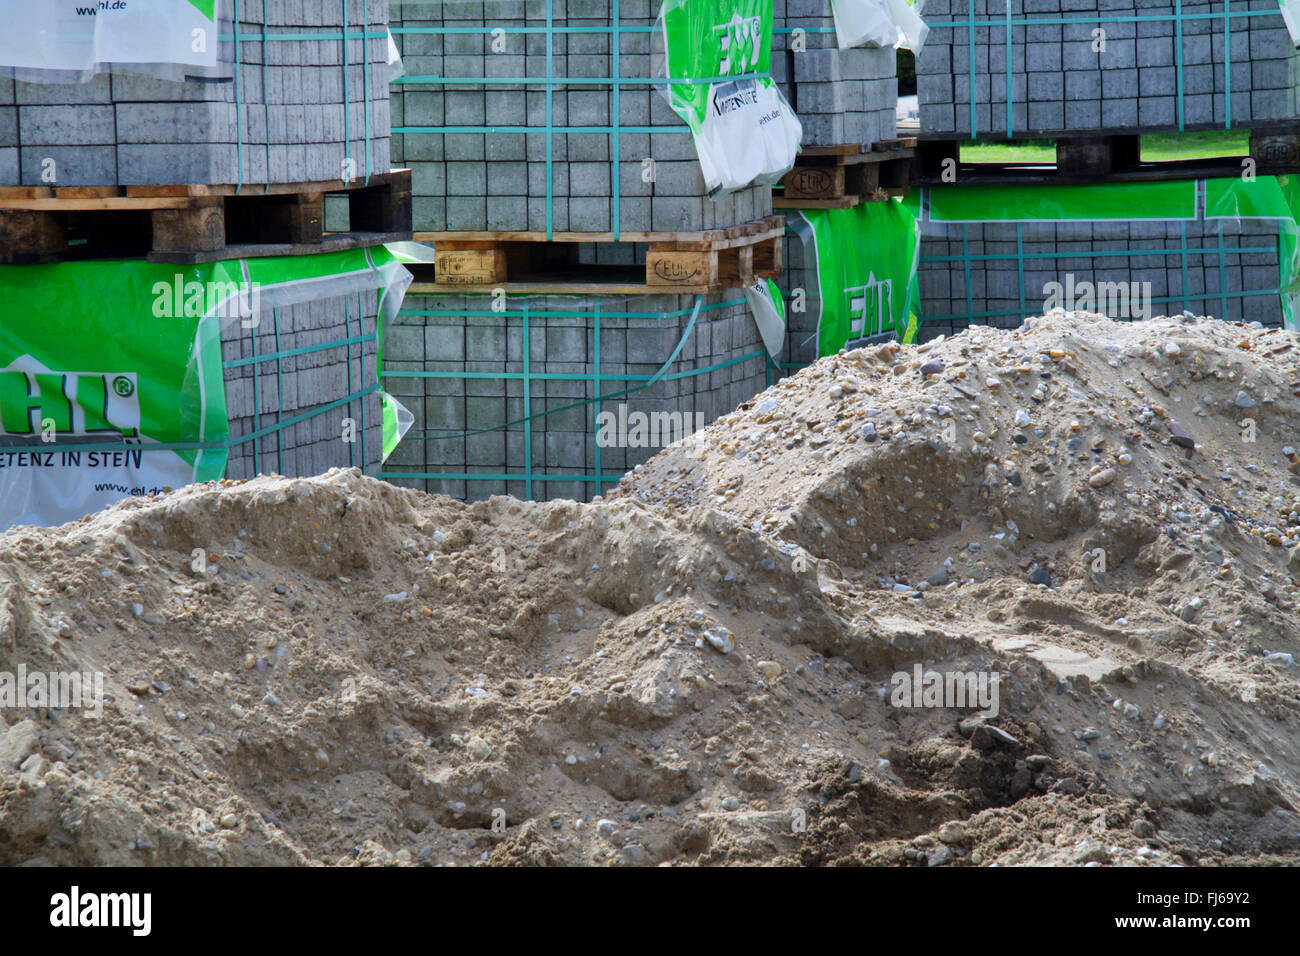 sand and paving stones for road construction, Germany - Stock Image